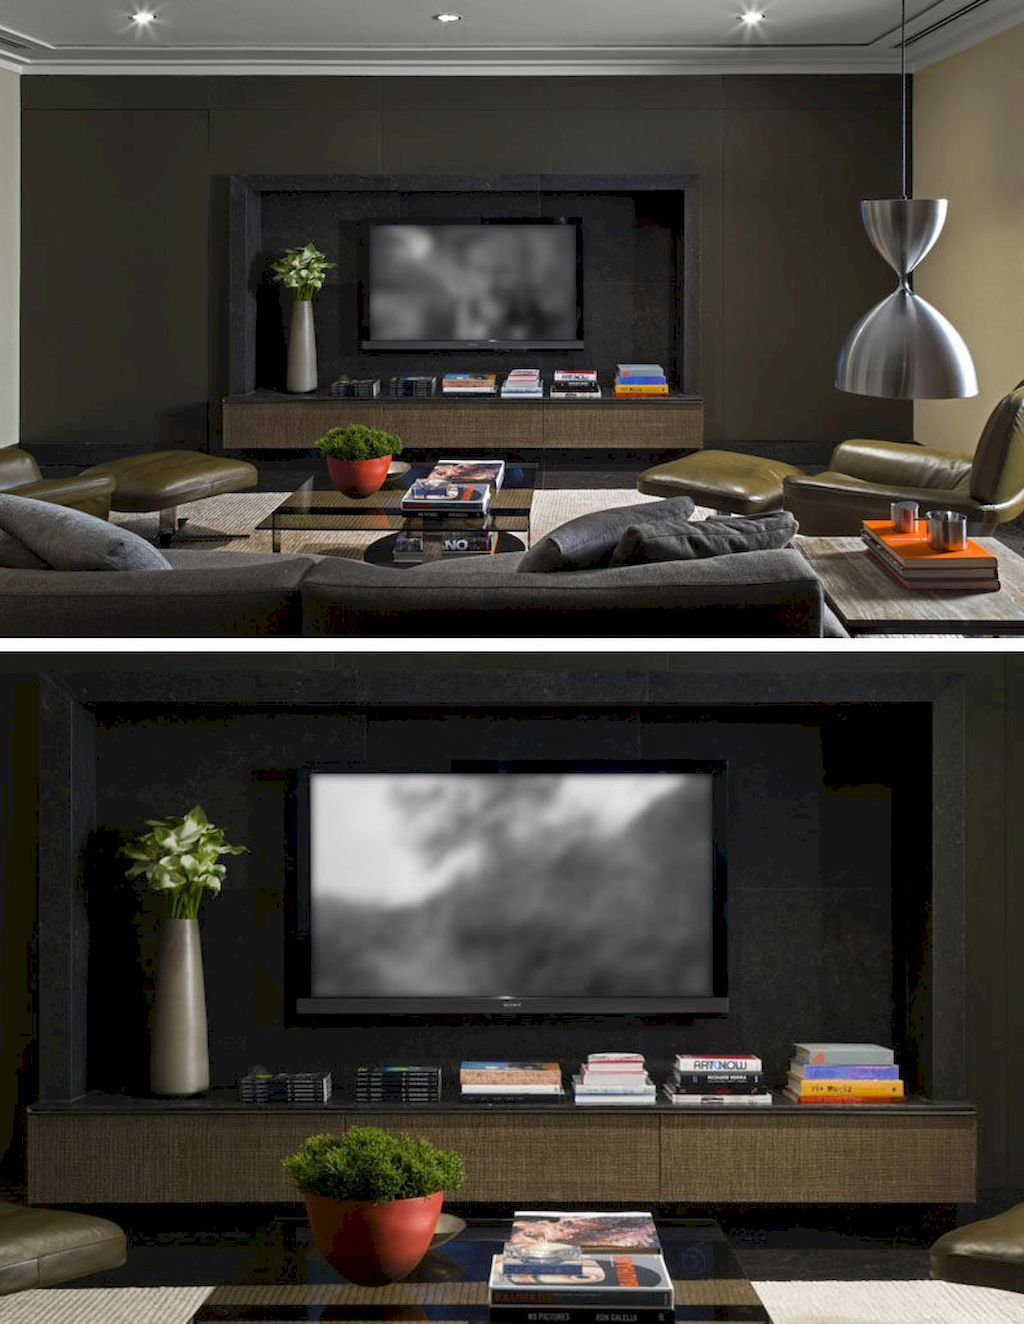 Cool 60 Tv Wall Living Room Ideas Decor On A Budget Source Link Https Roomadness Com 2018 10 12 Living Room Tv Wall Living Room Entertainment Living Room Tv #tv #wall #design #ideas #for #living #room